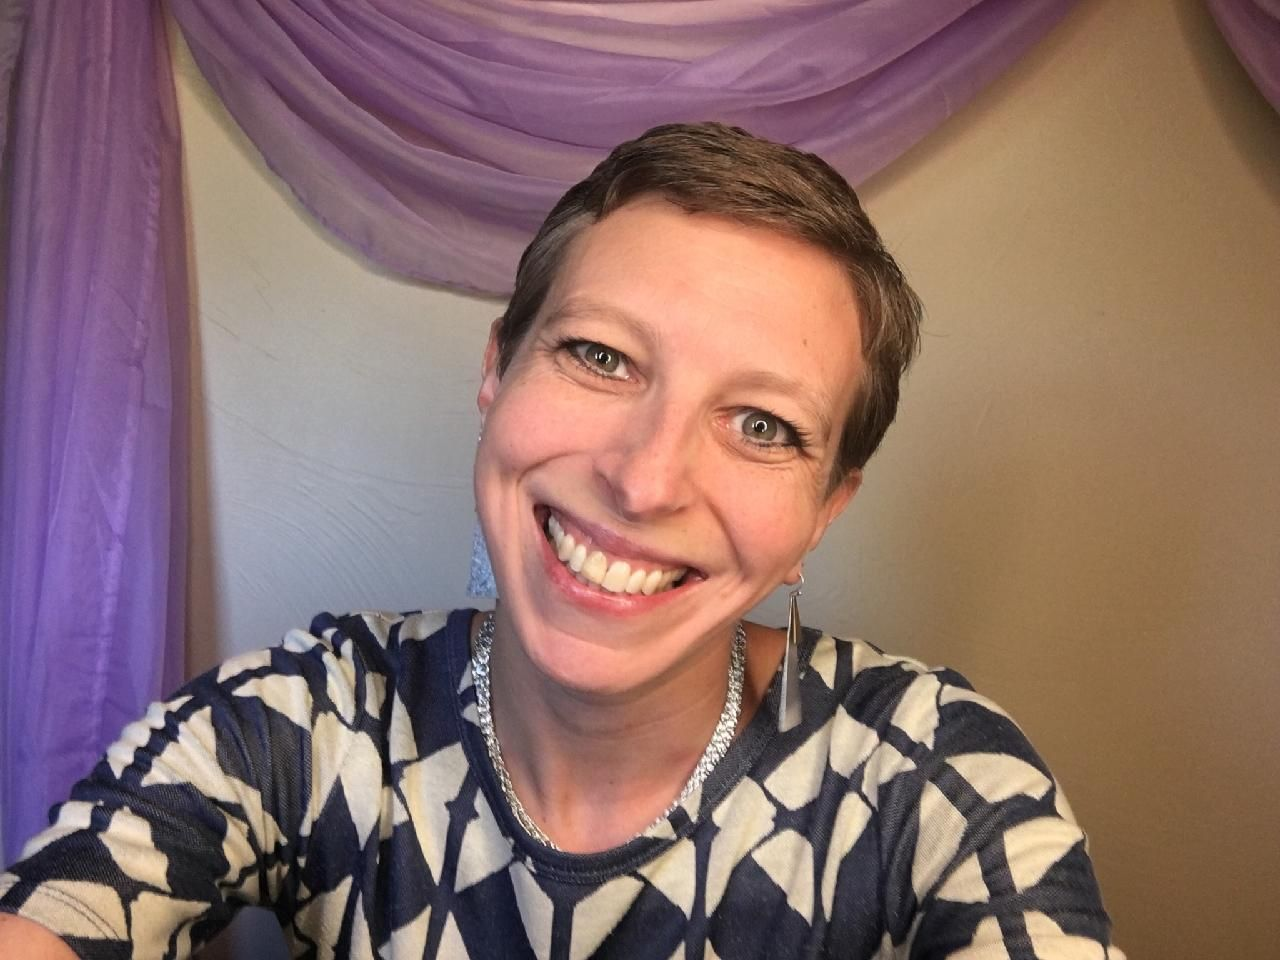 Christine Renee<span>Founder of ReikiCafe University, Christine Renee offers Reiki trainings, Reiki Business Coaching, and Chakra Coaching.</span>